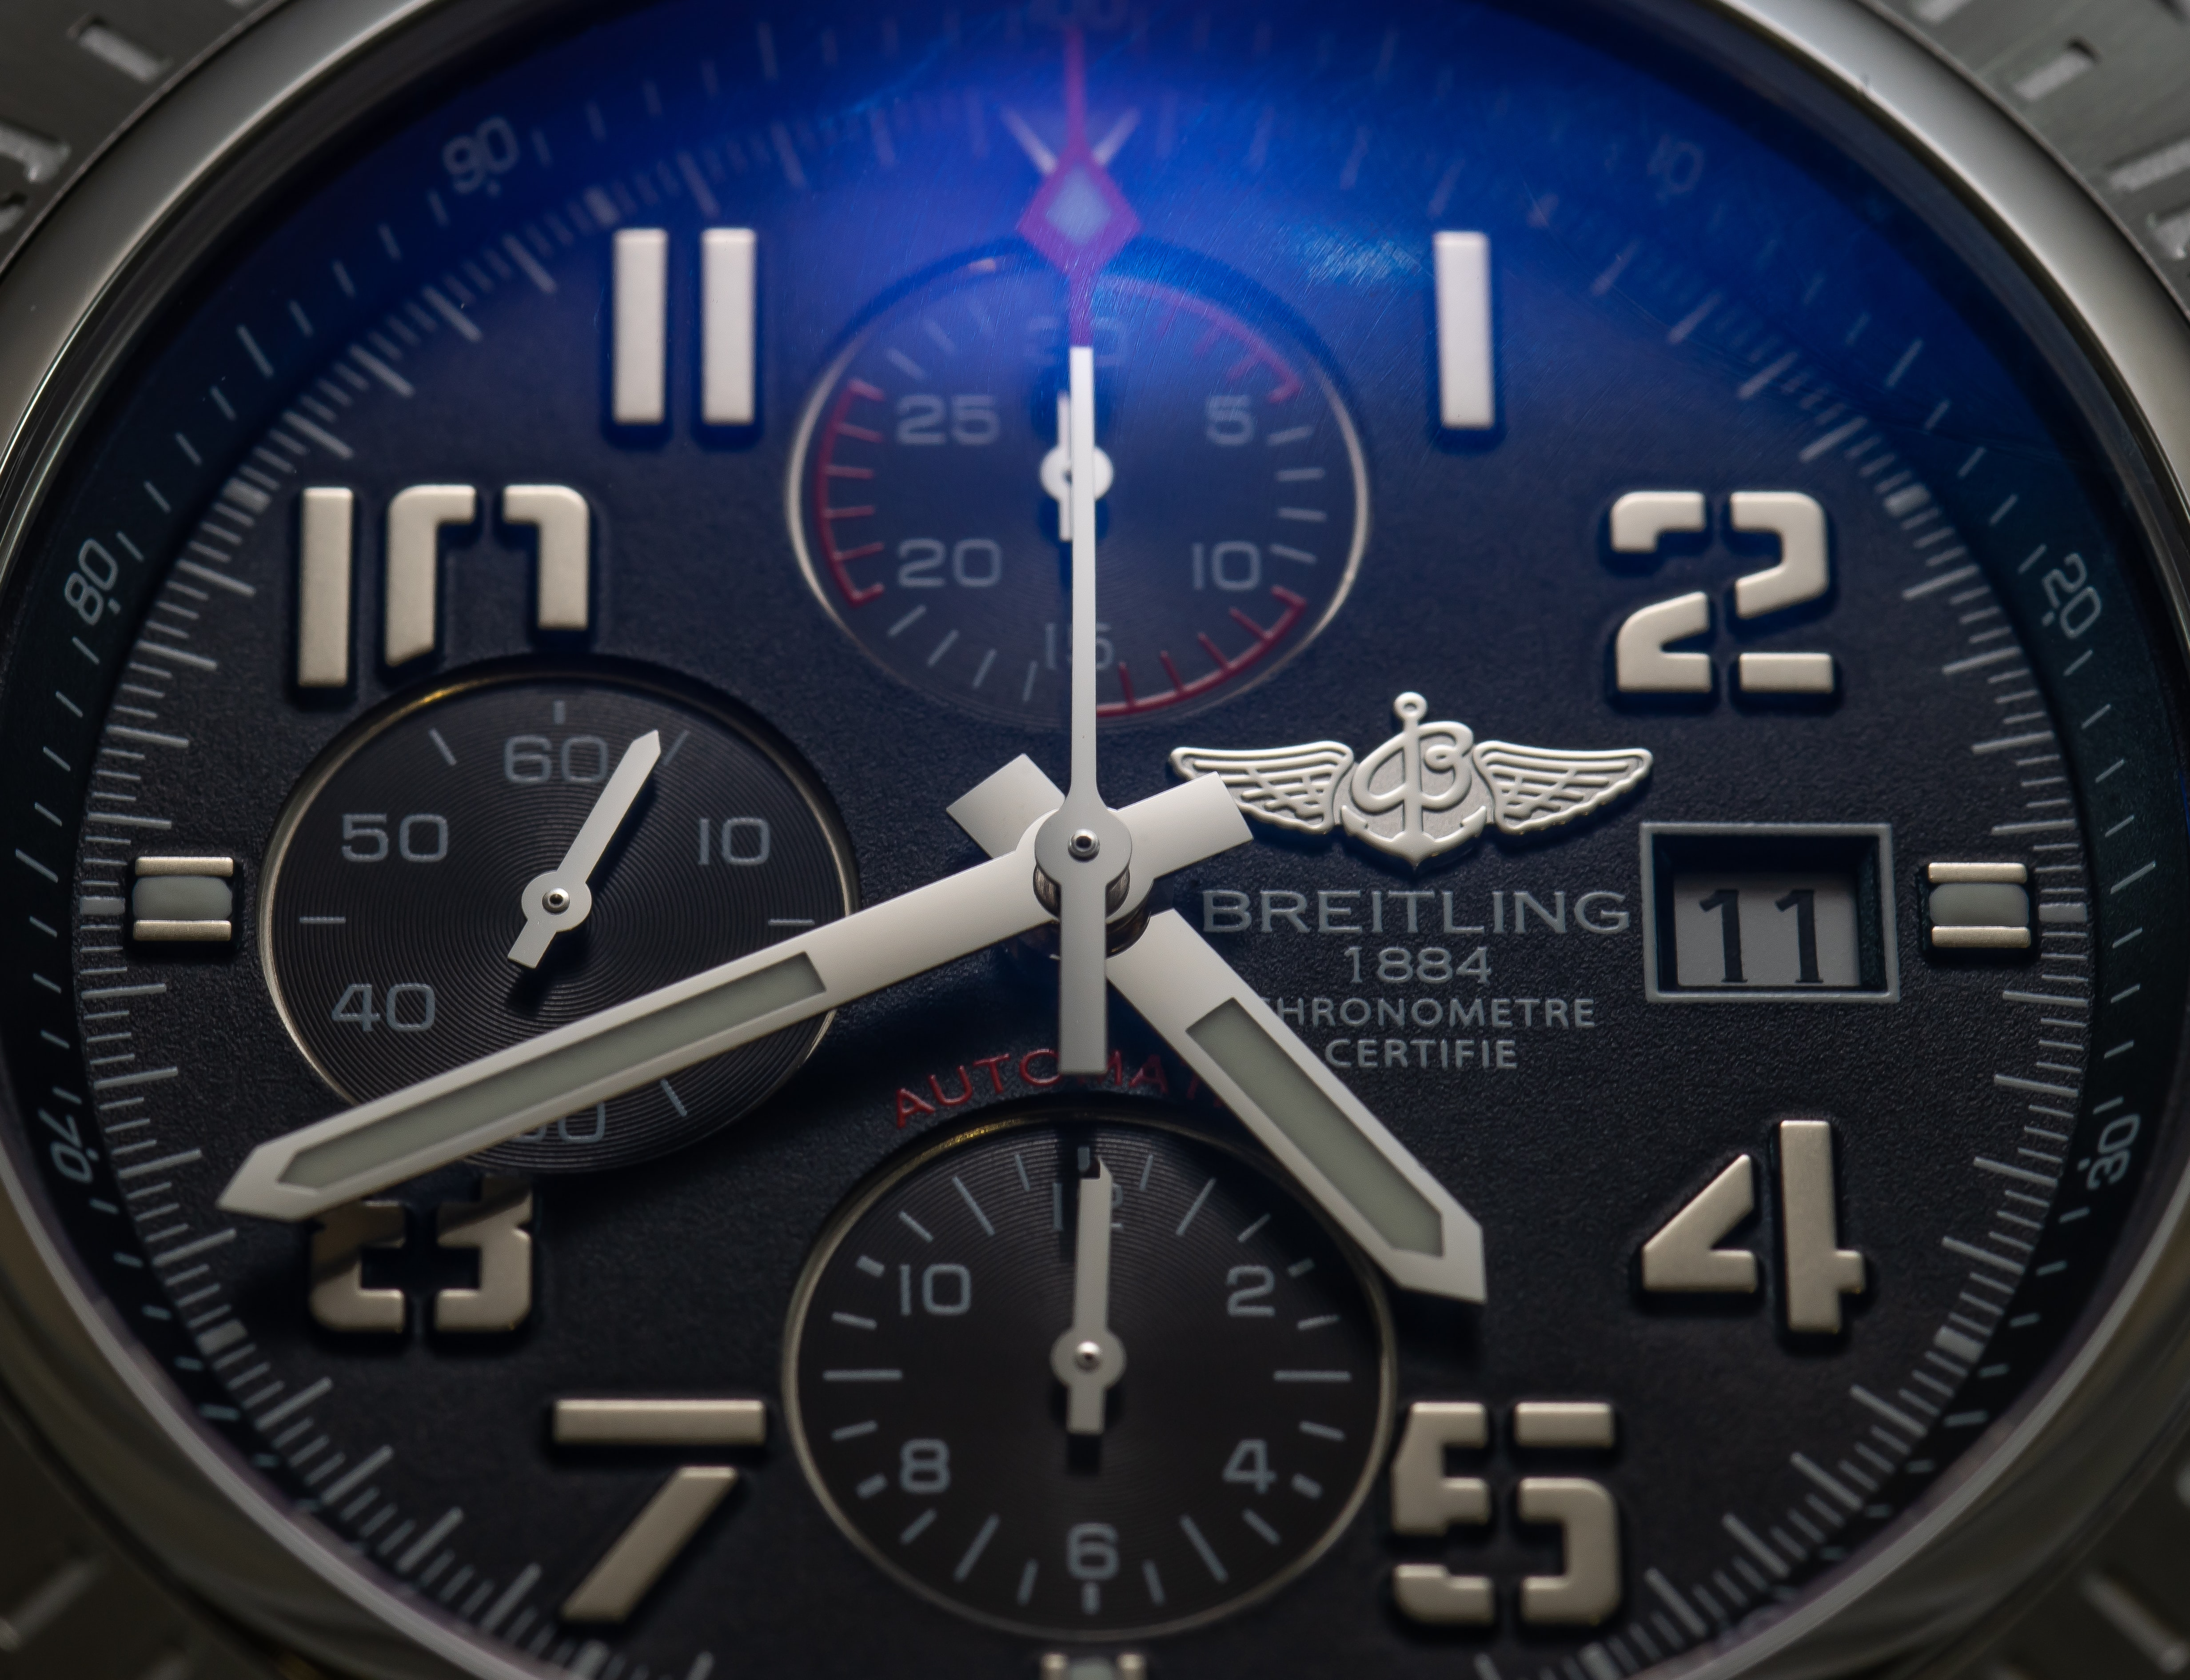 round gray and black Breitling chronograph watch at 4:42